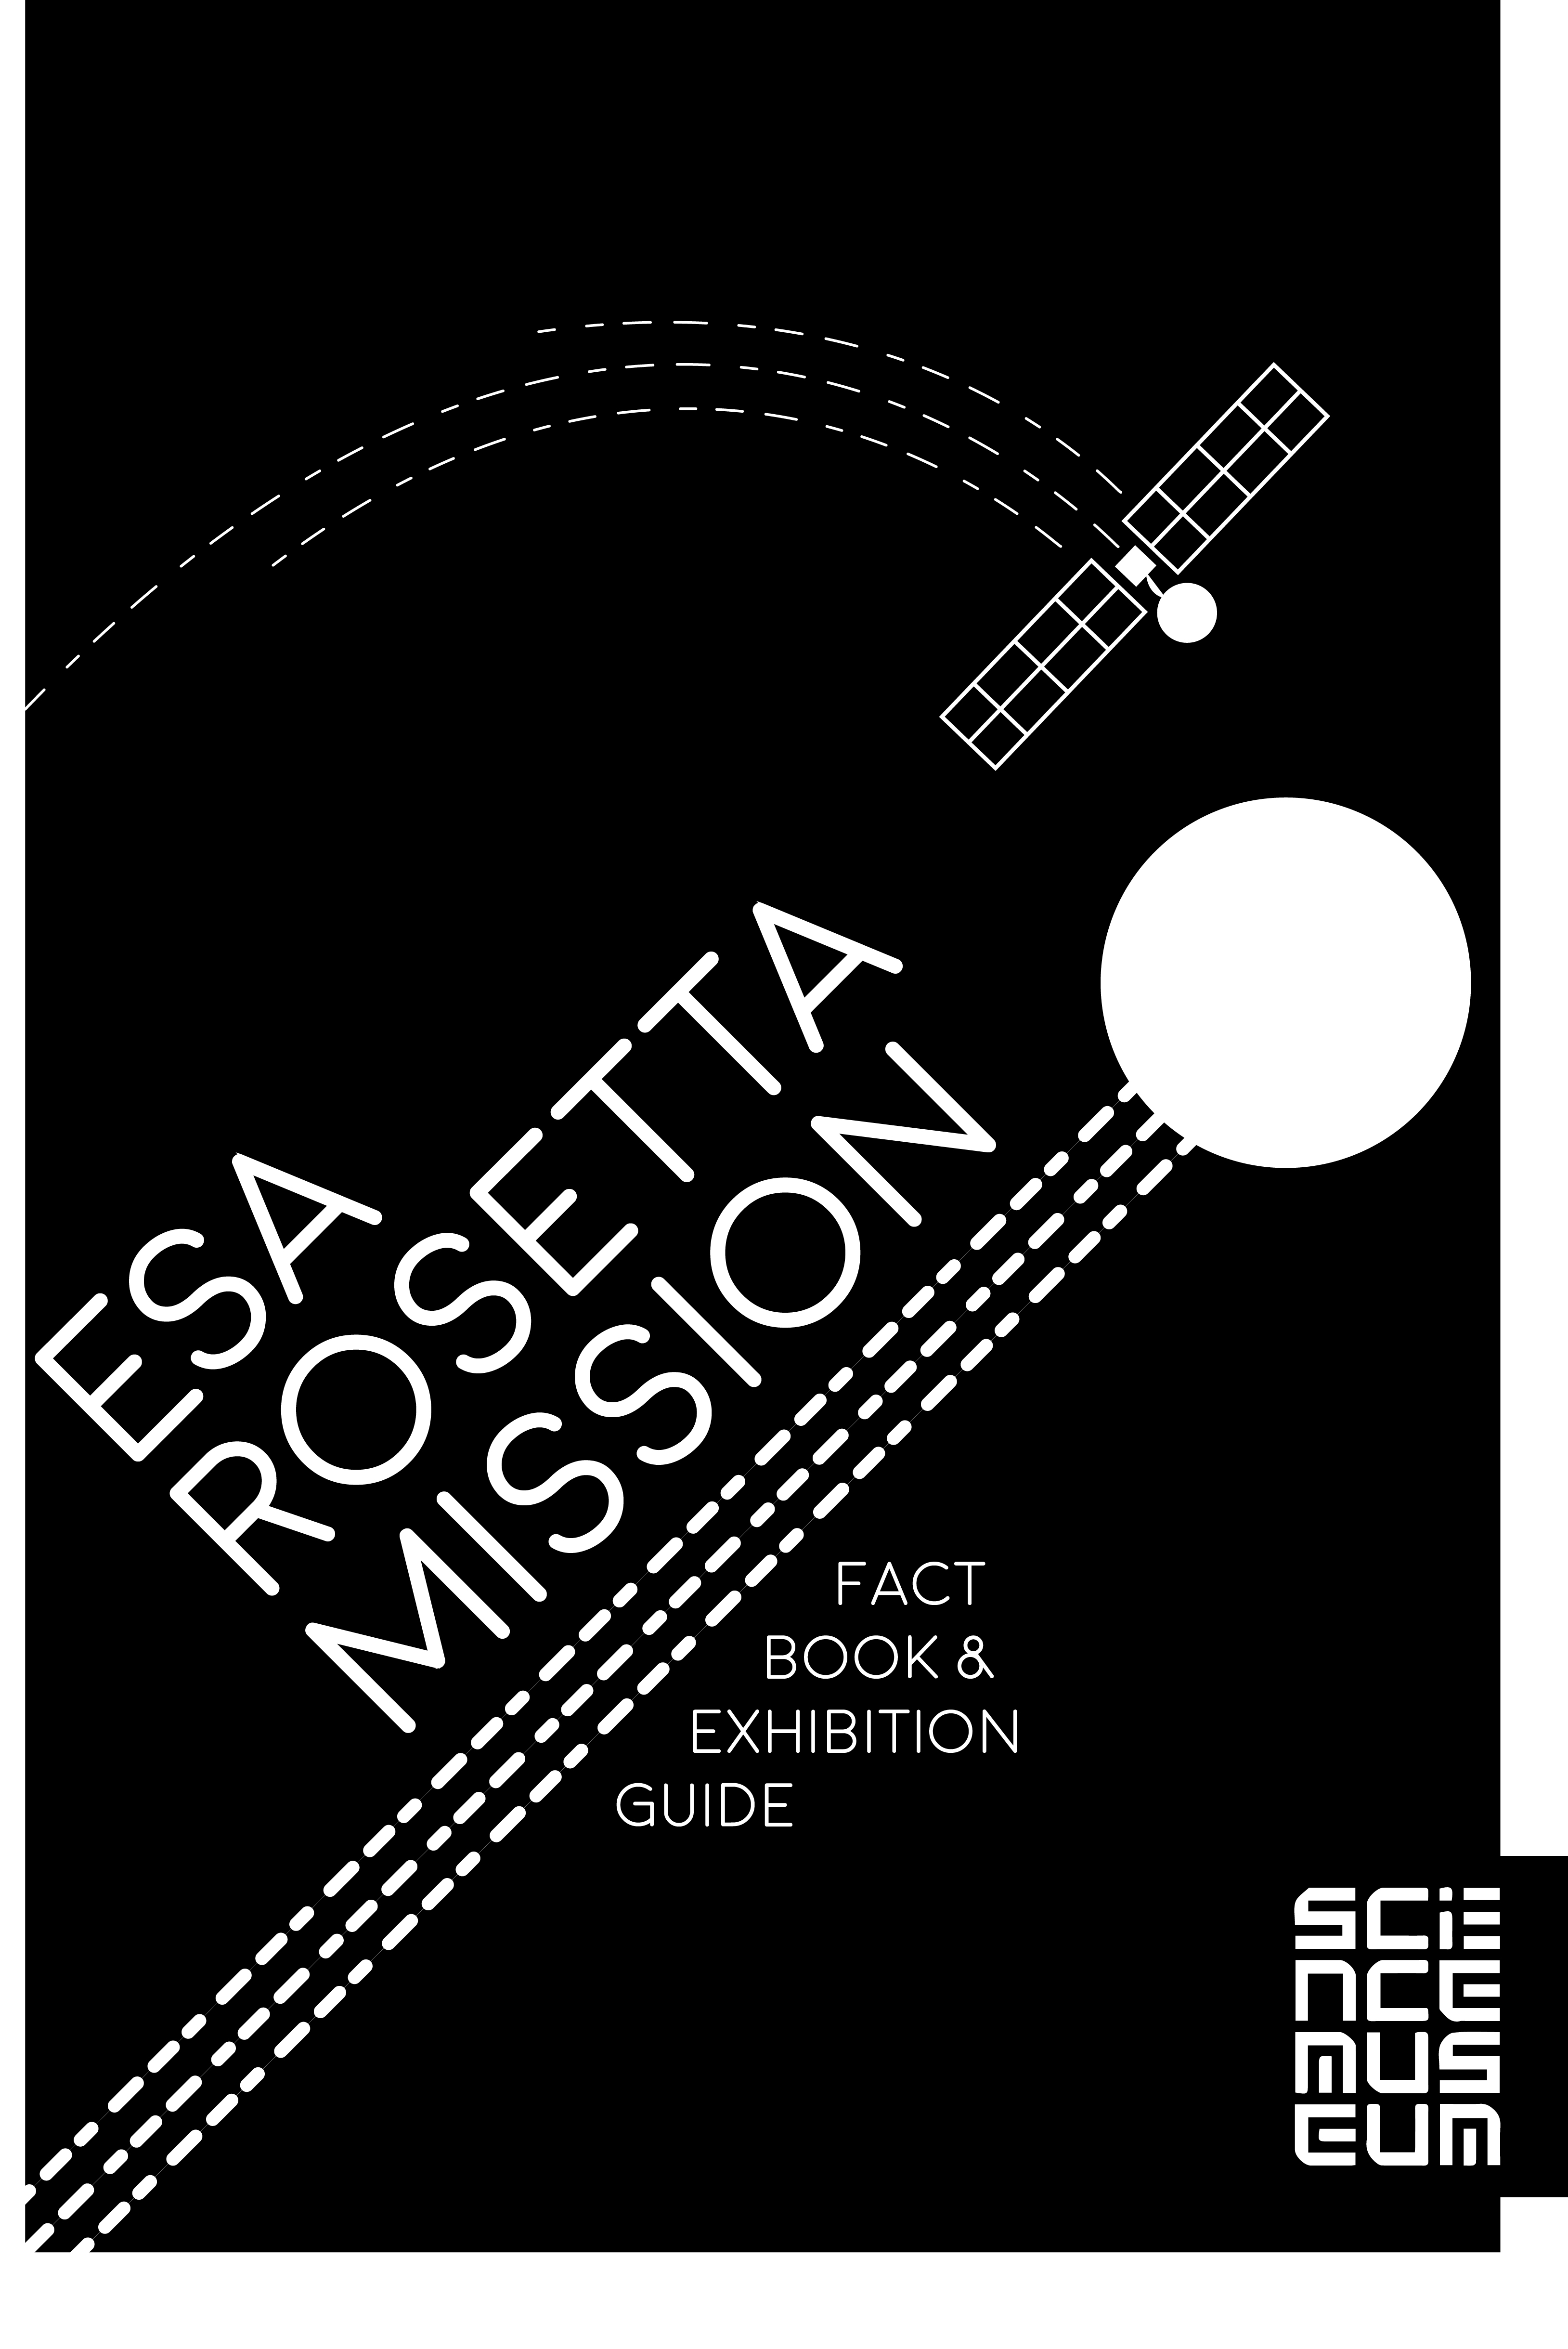 ESA Rosetta Mission Event Guide